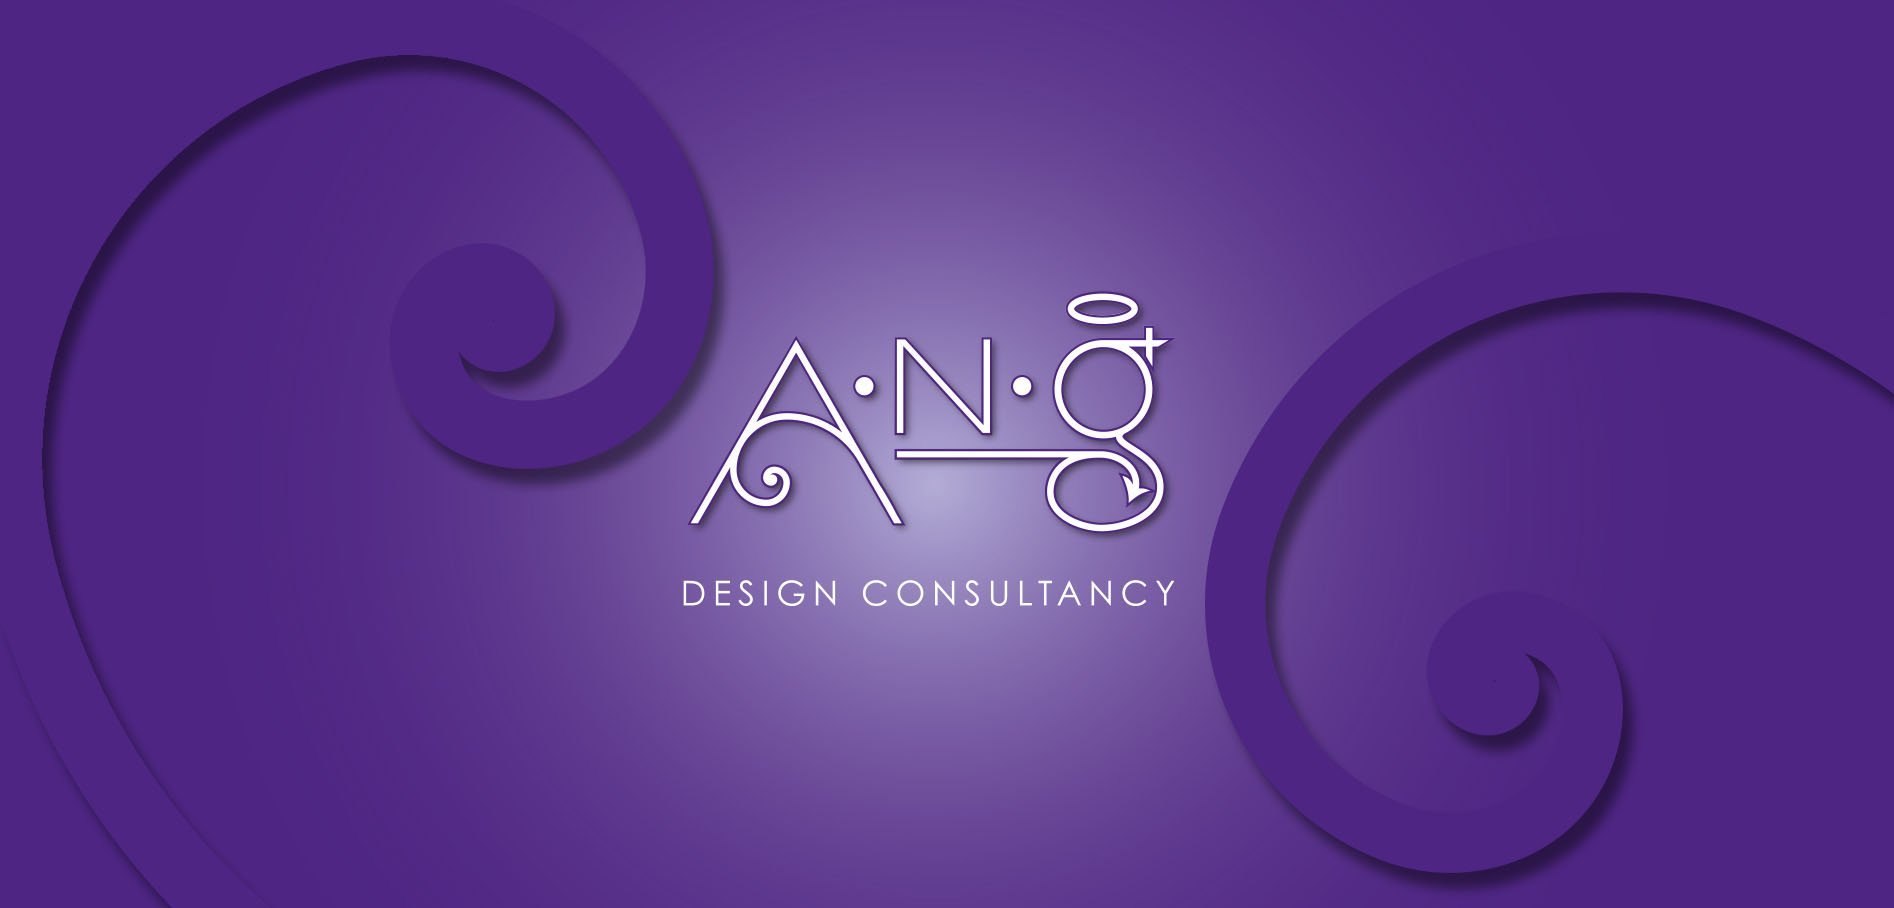 ANG creative design creating business by design